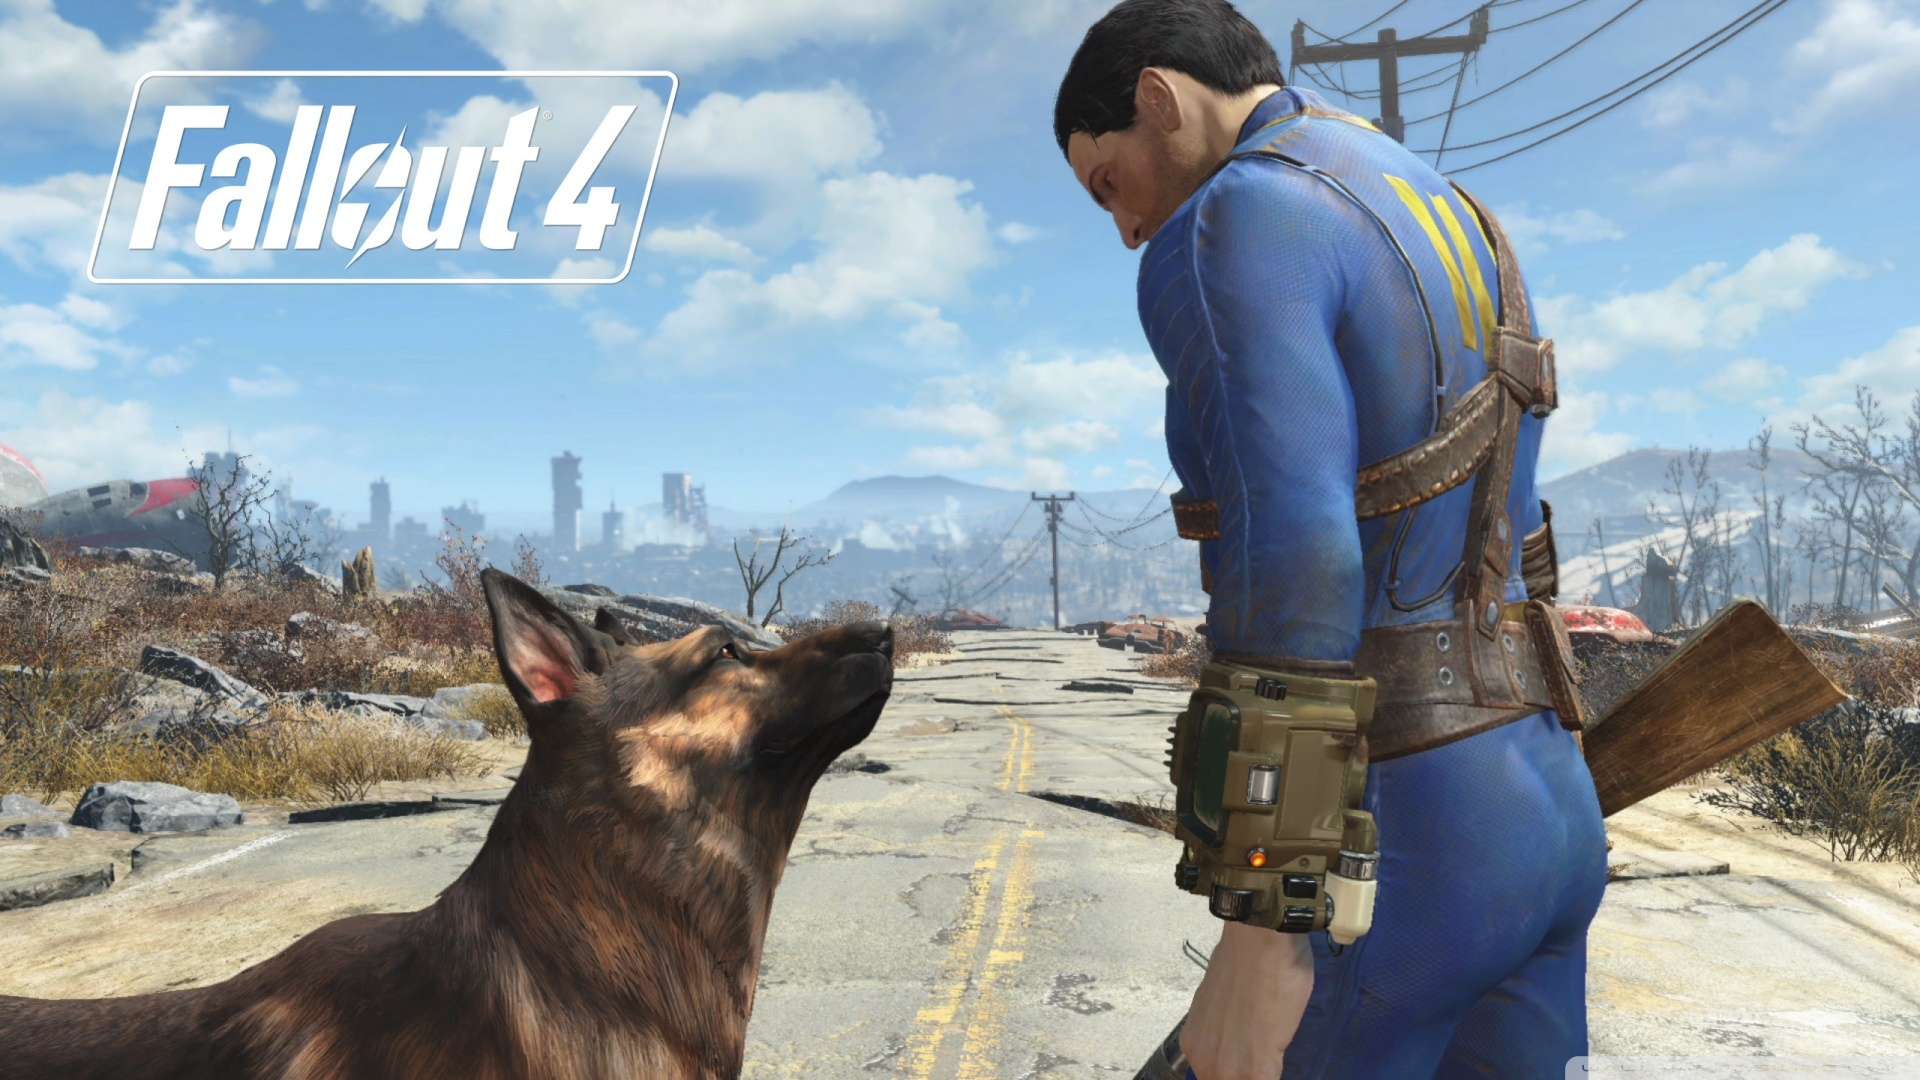 Wallpapers HD Fallout 4